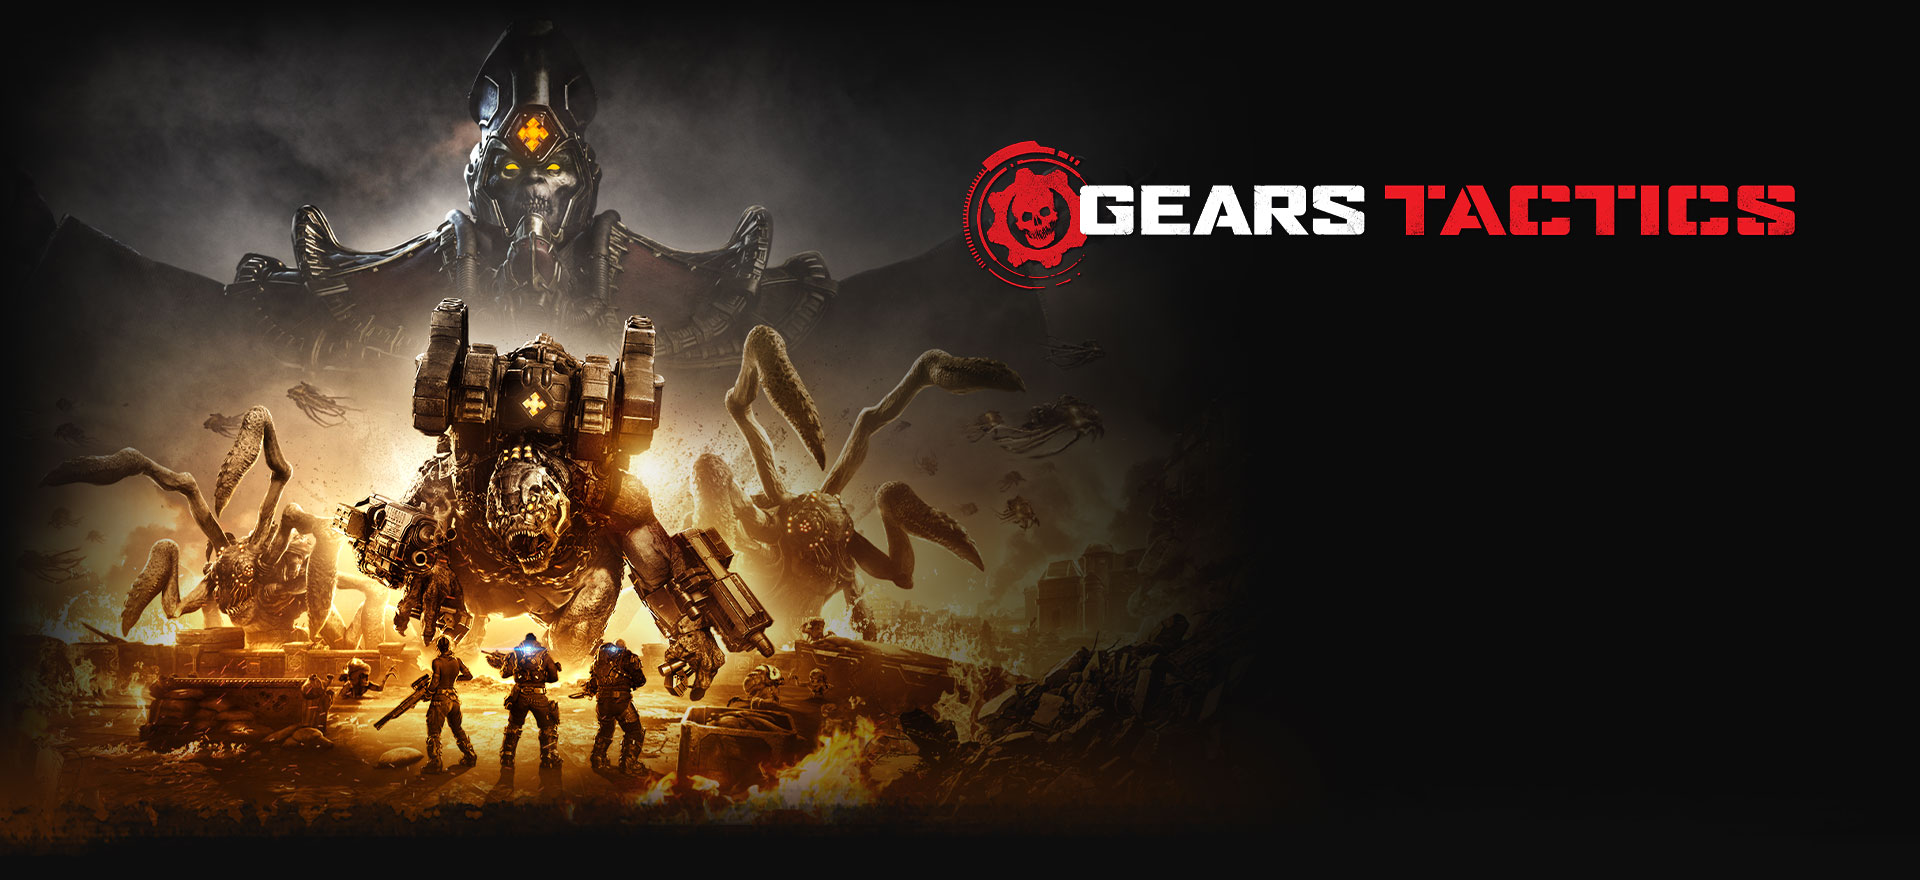 Gears Tactics, Three characters in heavy armour face large monsters in a burning war zone